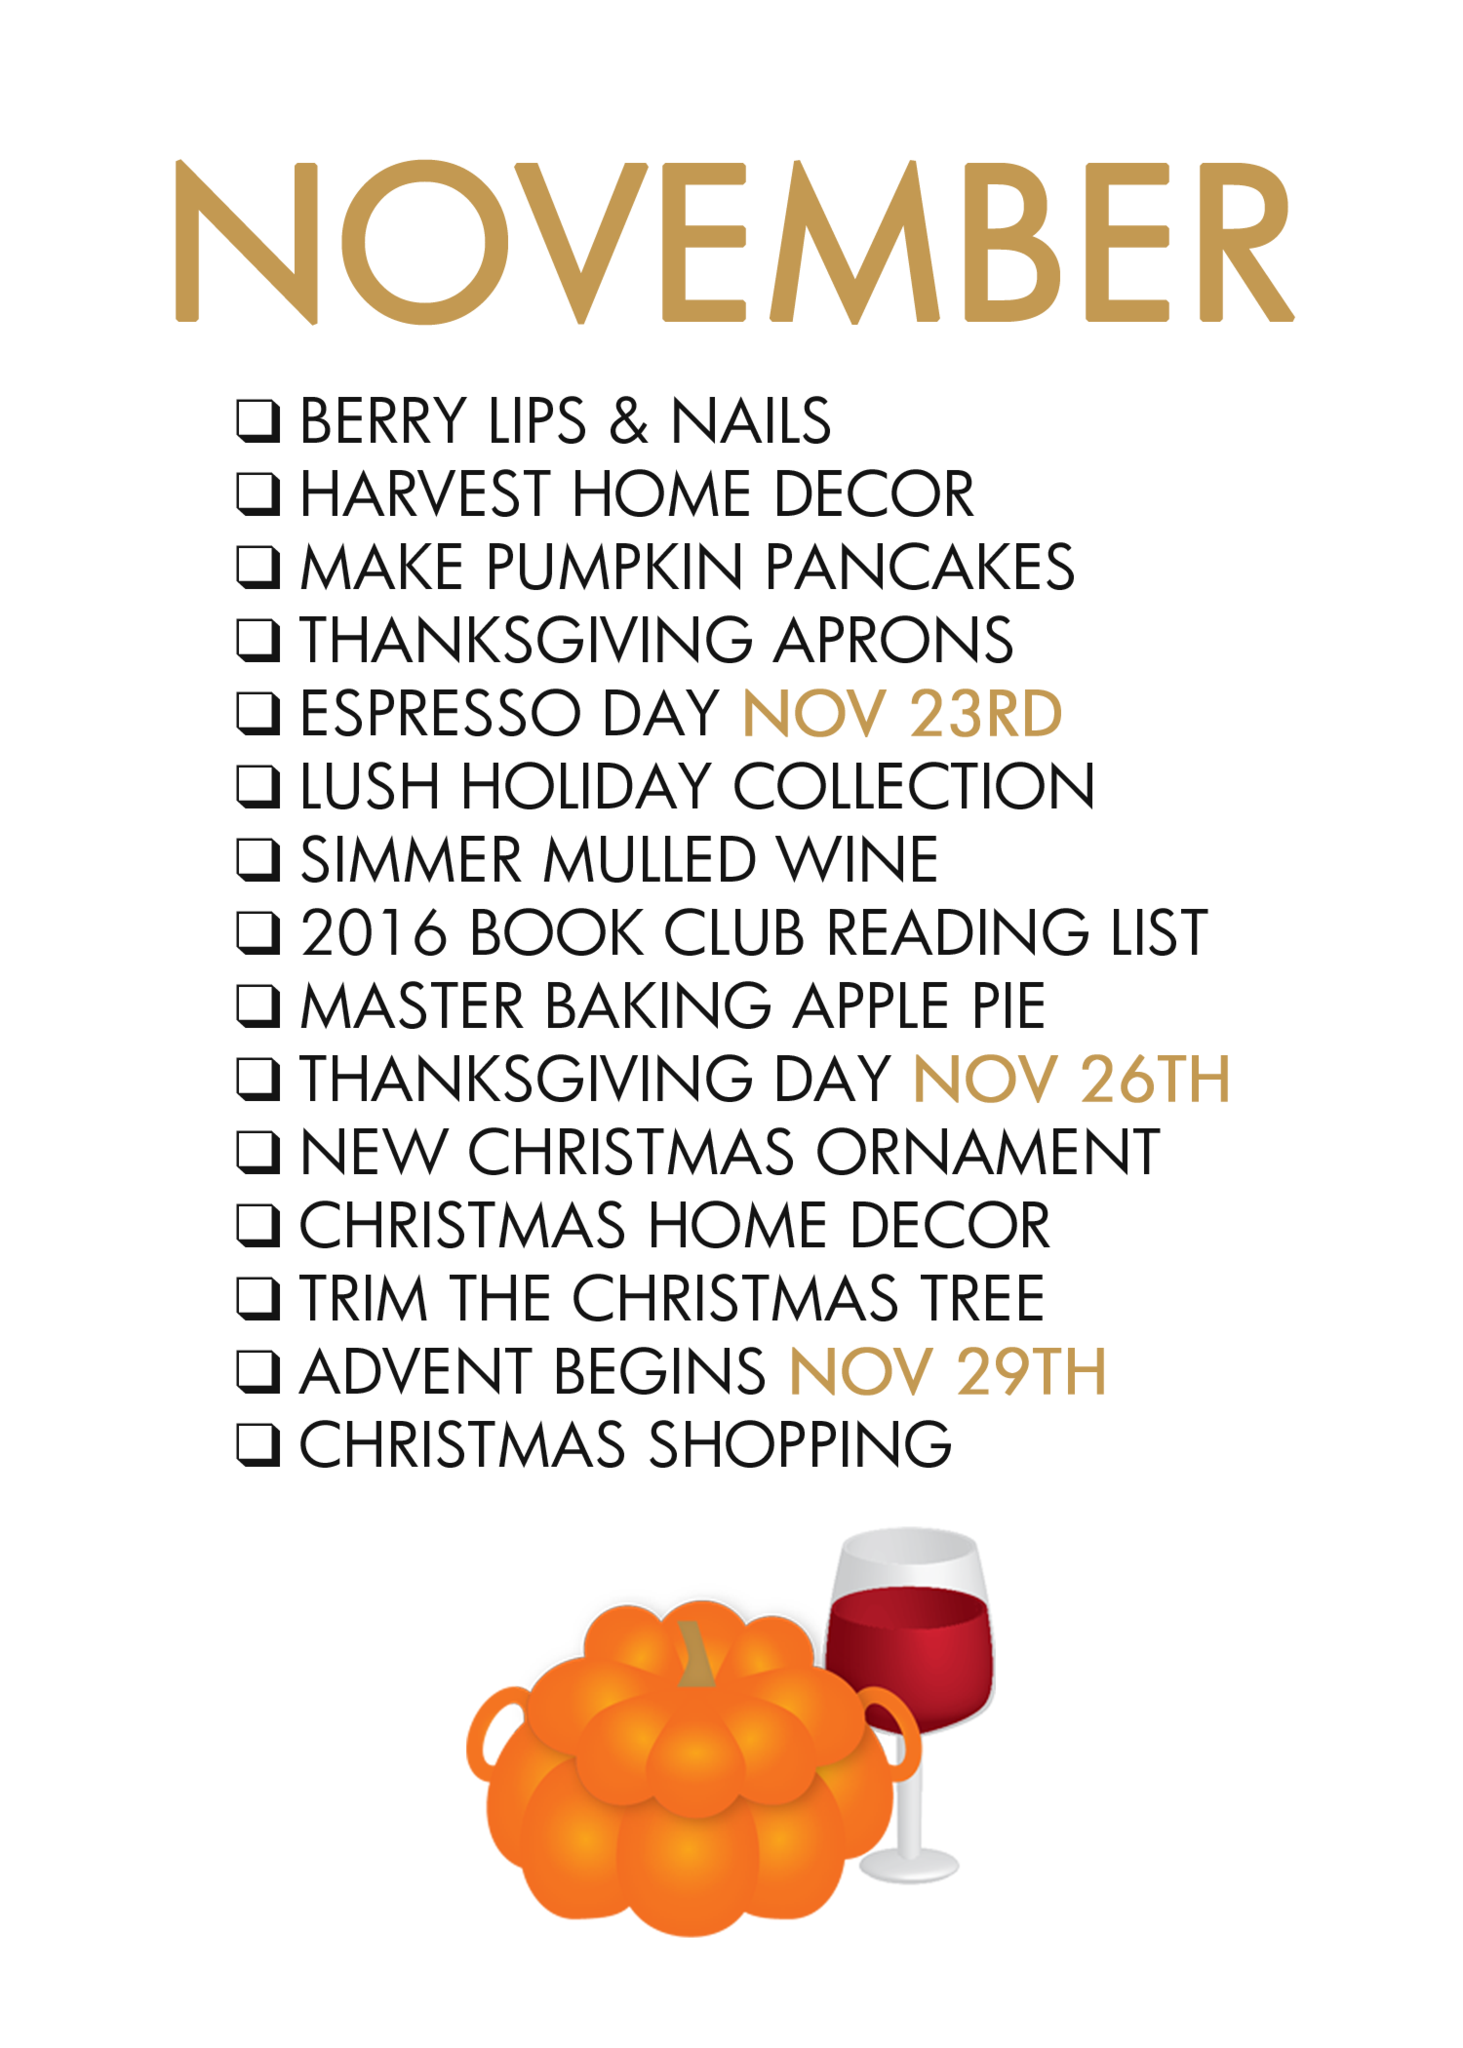 November Seasonal Living List